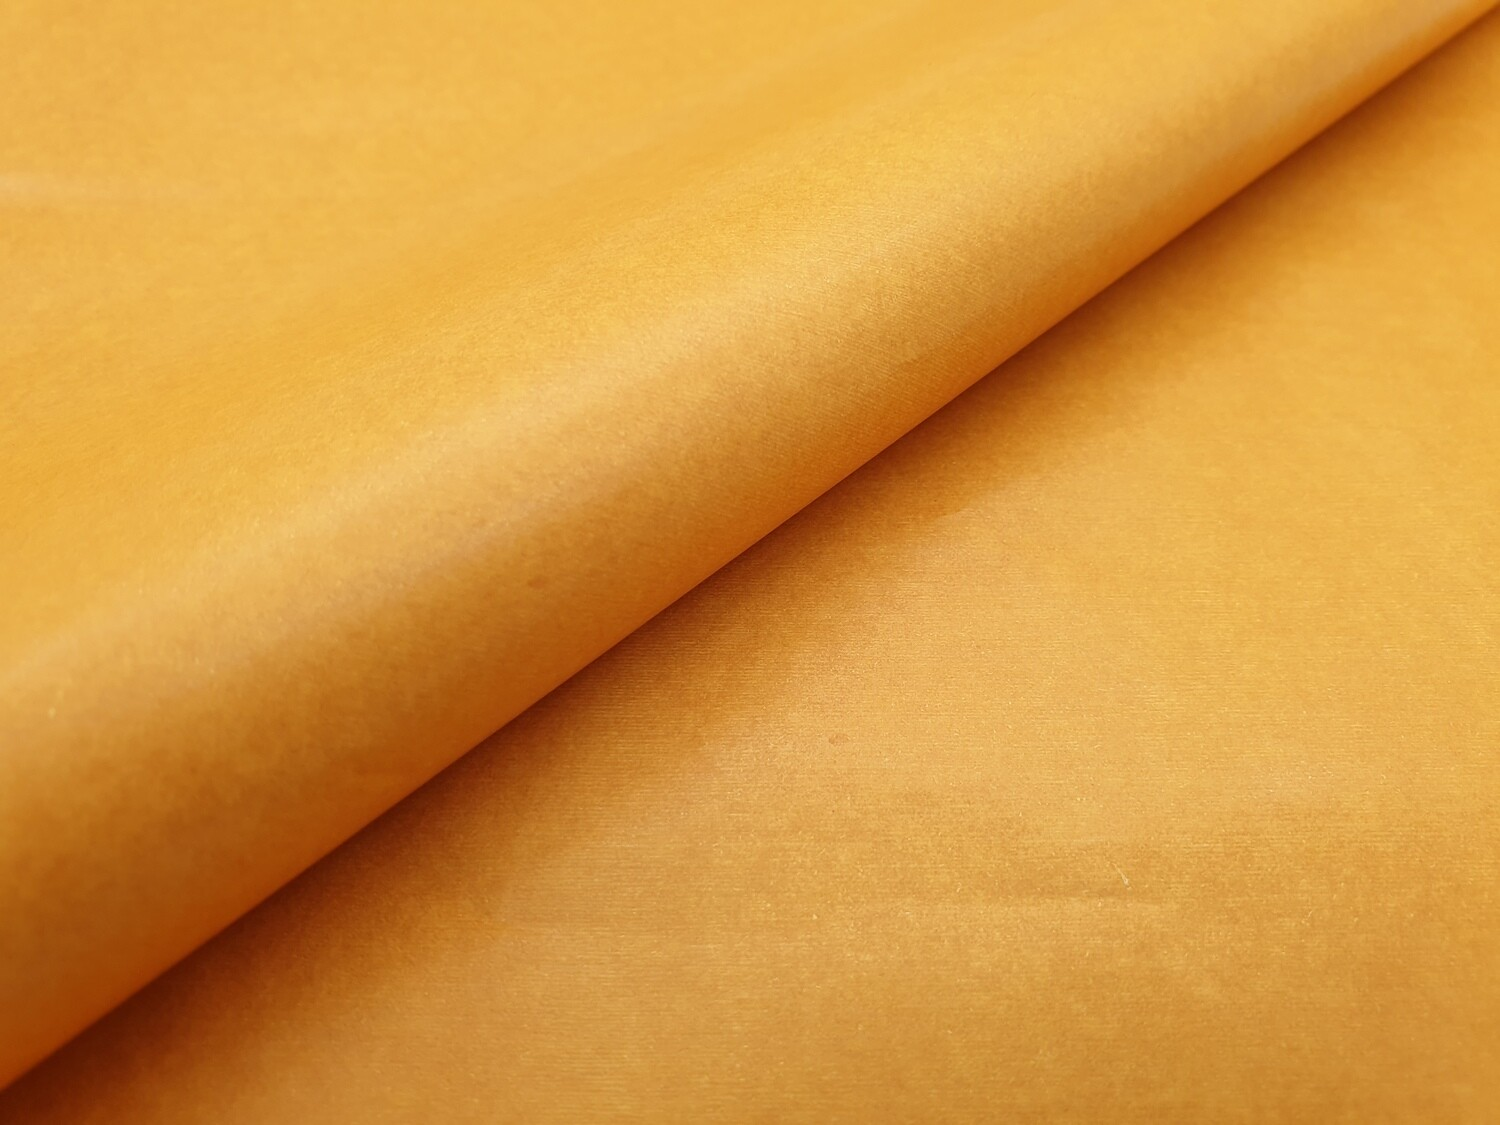 Paper Tissue No. 55 - Light Brown (25 sheets)